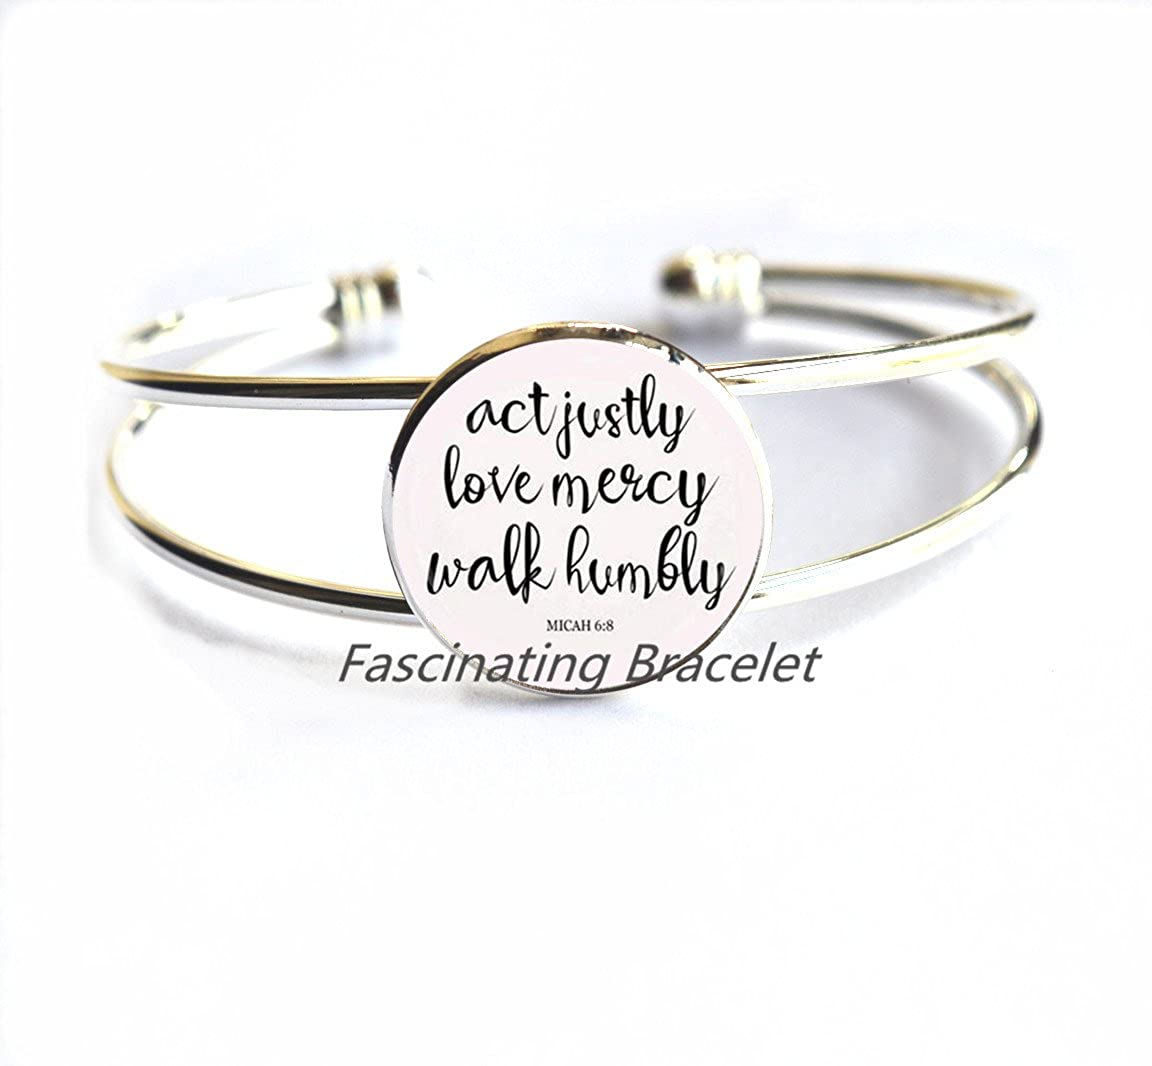 68 Act Justly Love Mercy Walk Humbly cameo Photo Cabochon Bracelet bible quote jewelr,AE0122